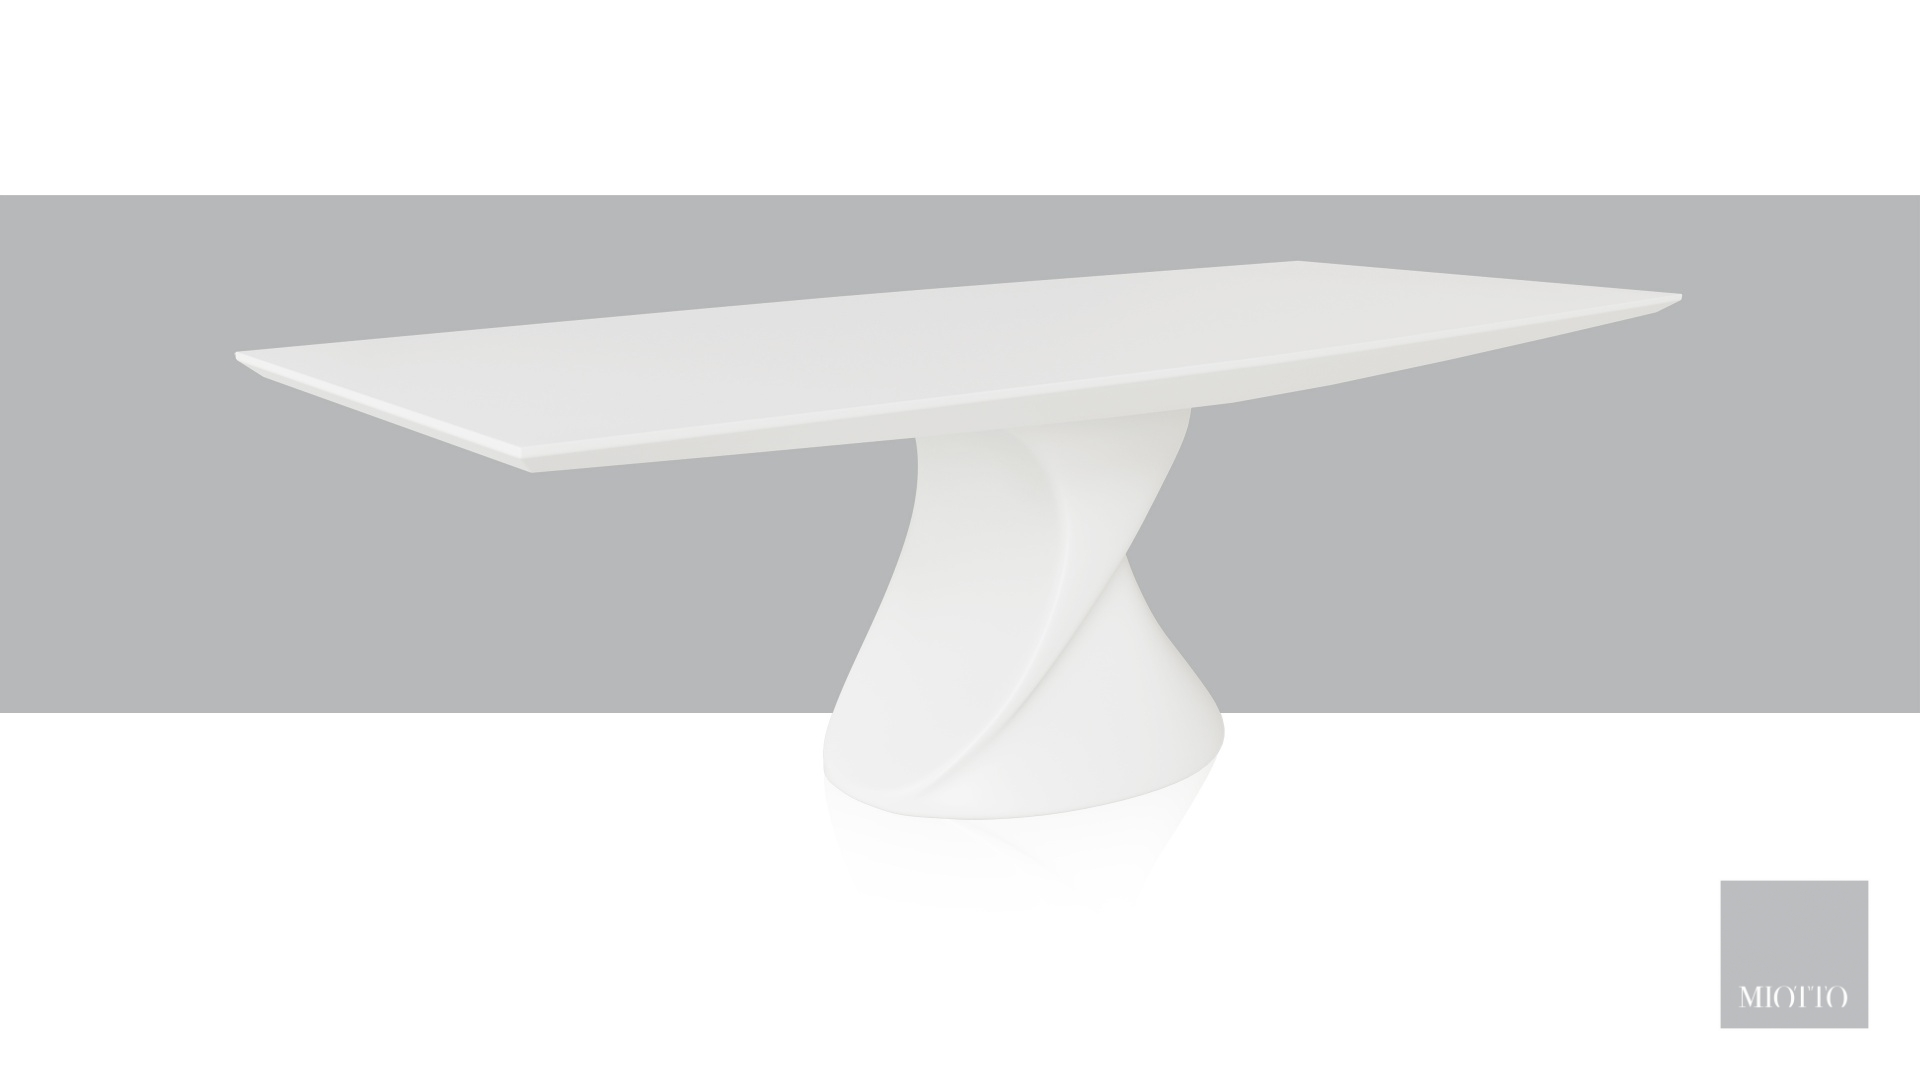 miotto_Bibiana dining table 240 side miotto furniture t